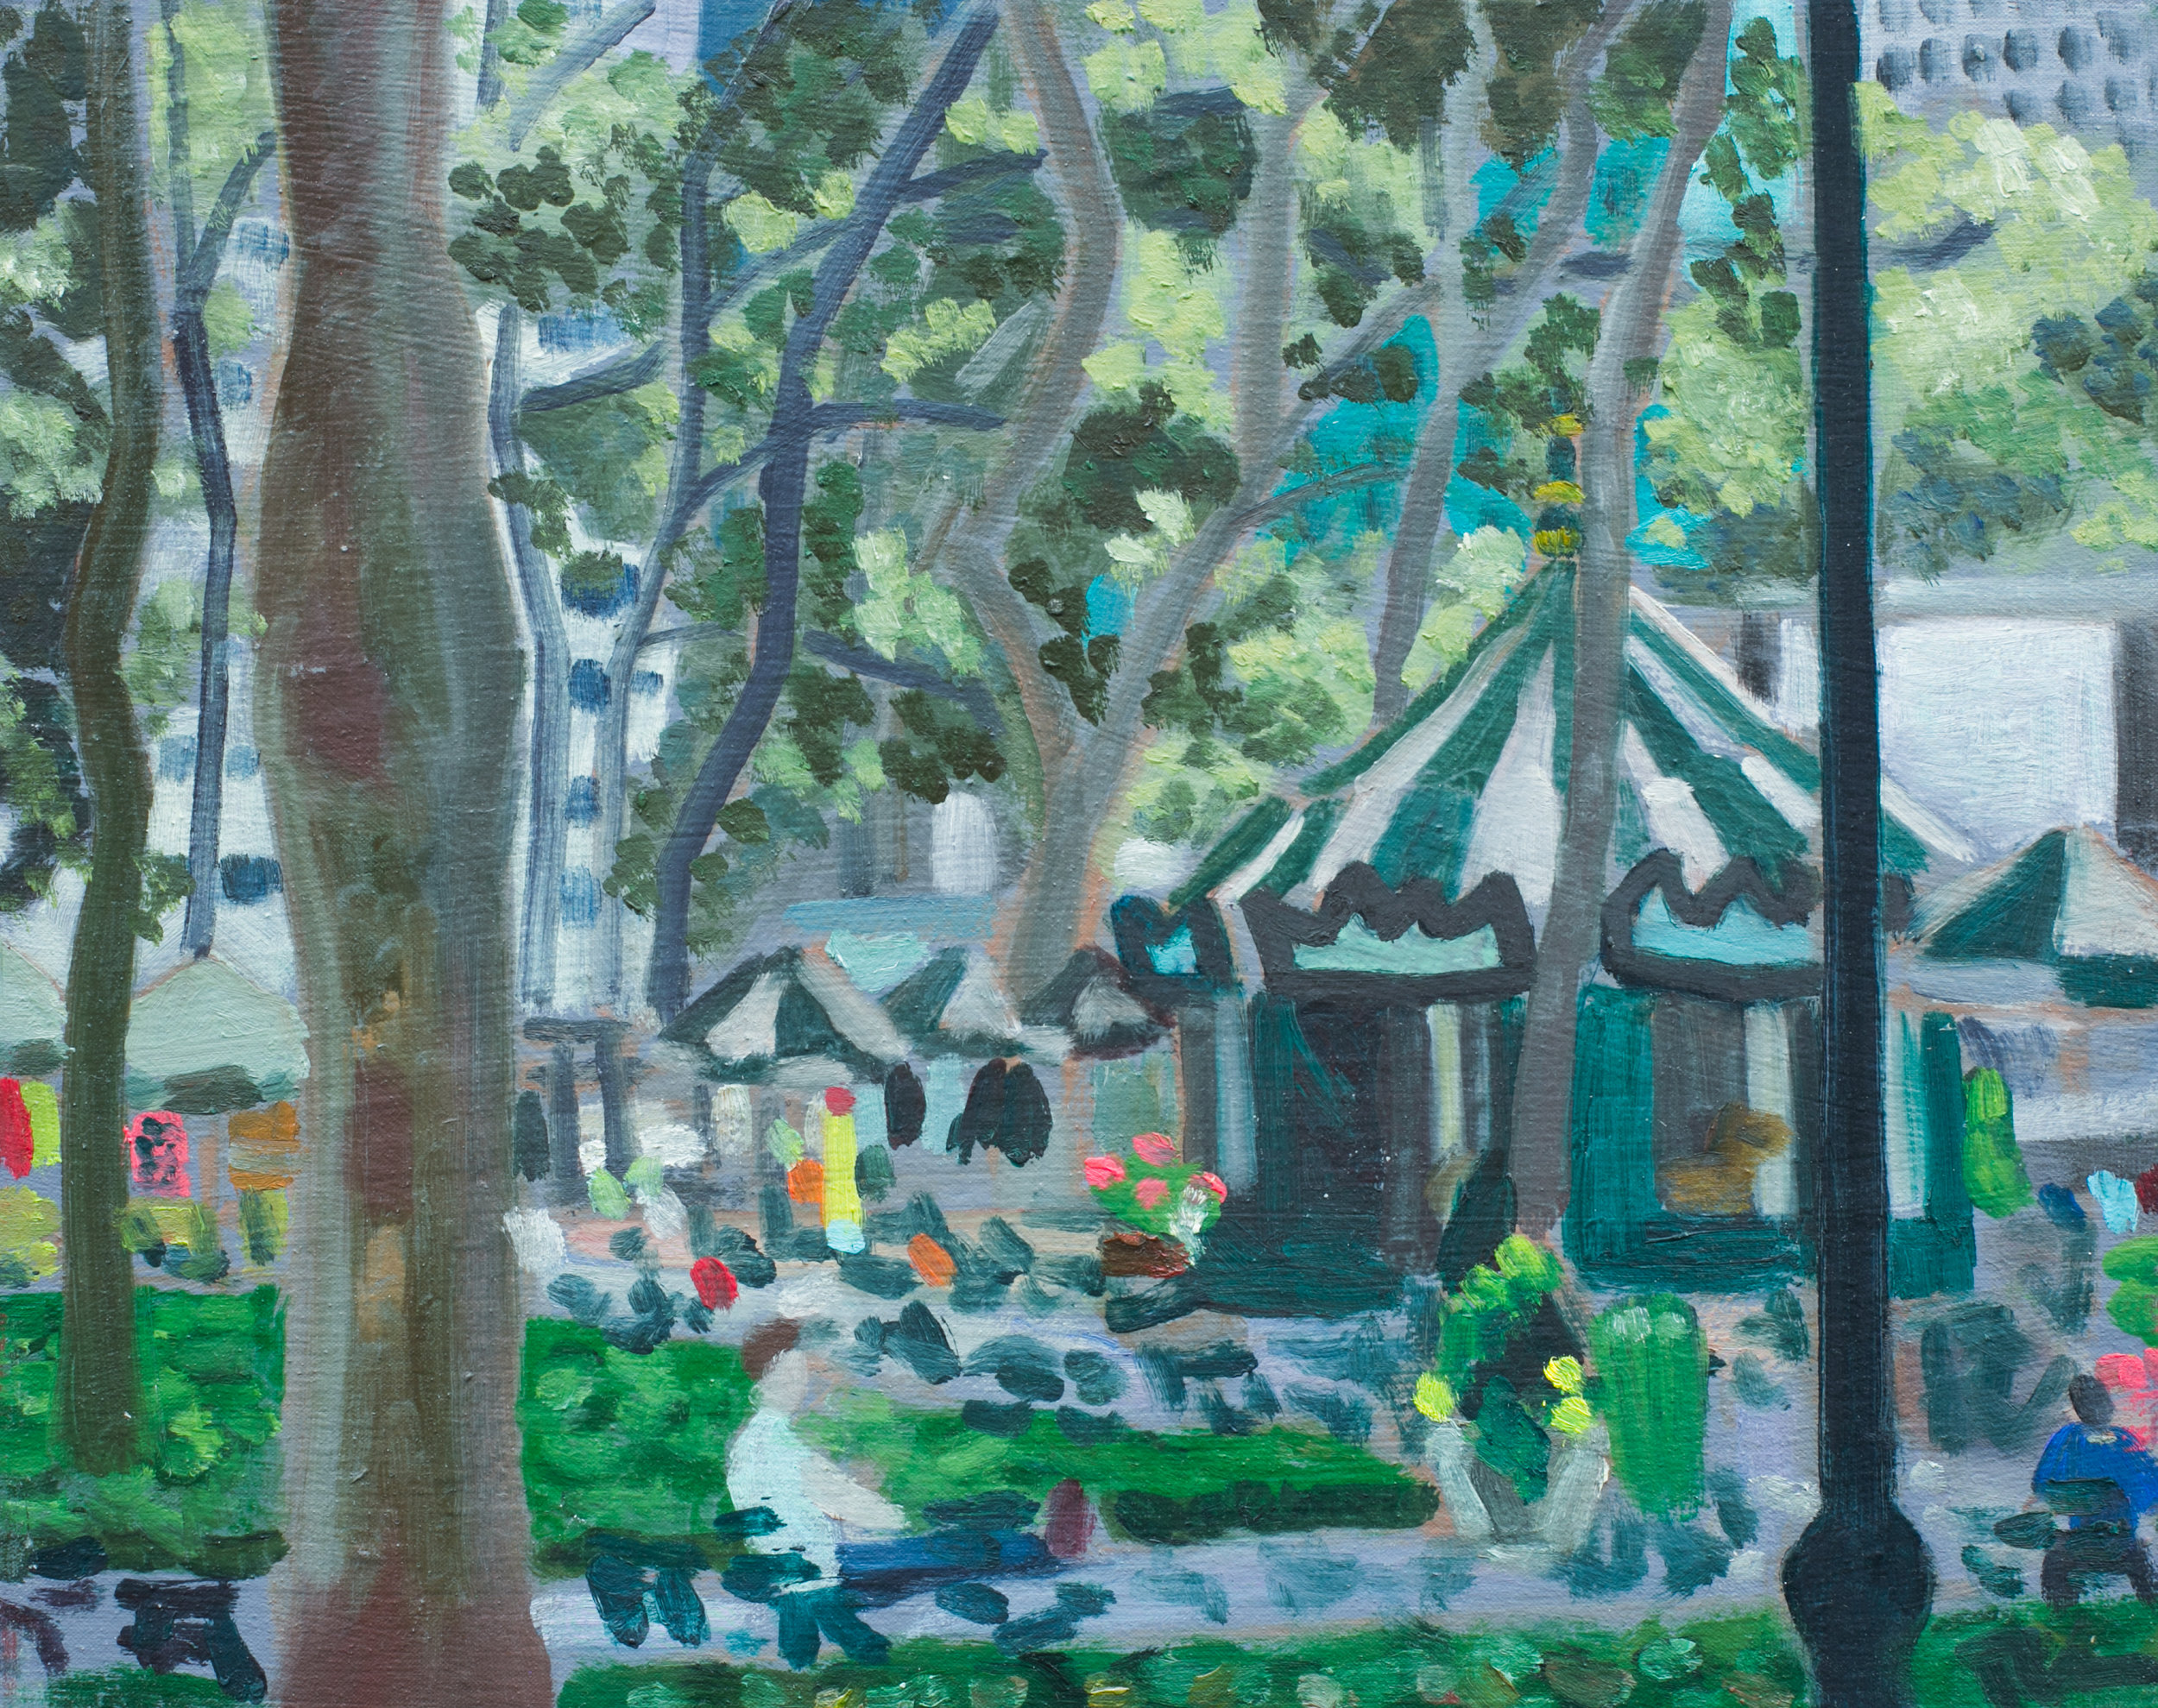 "Bryant Park #27 - July 14, 2016 - 9 1/2"" x 12"" - oil on panel"